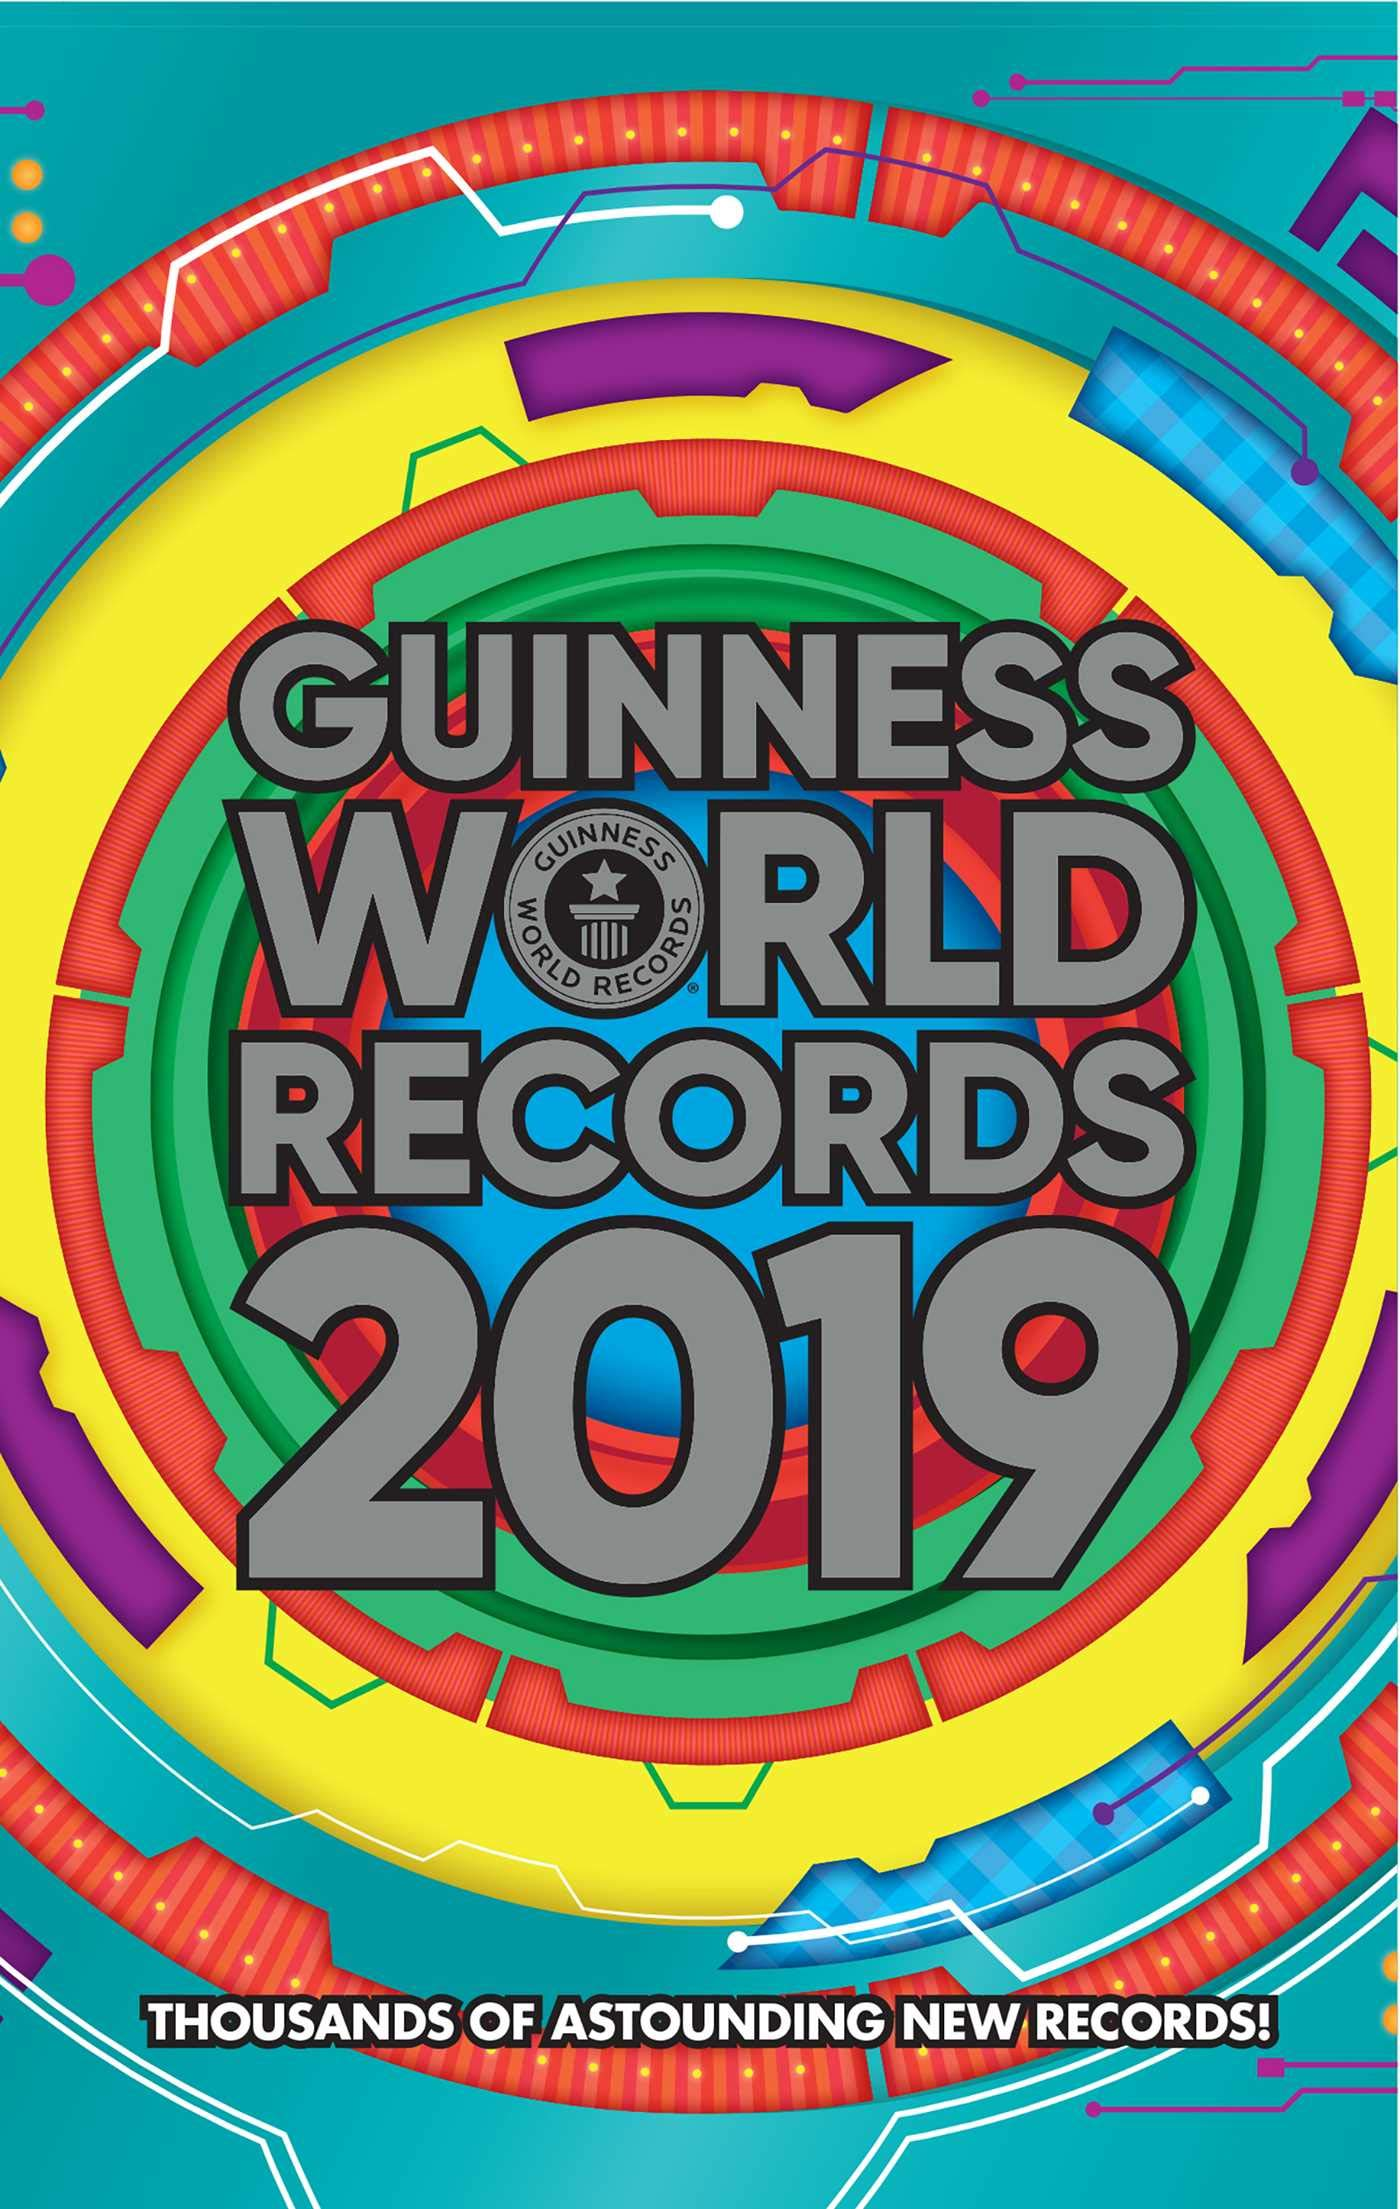 Guinness World Record Logo Png , Free Transparent Clipart - ClipartKey